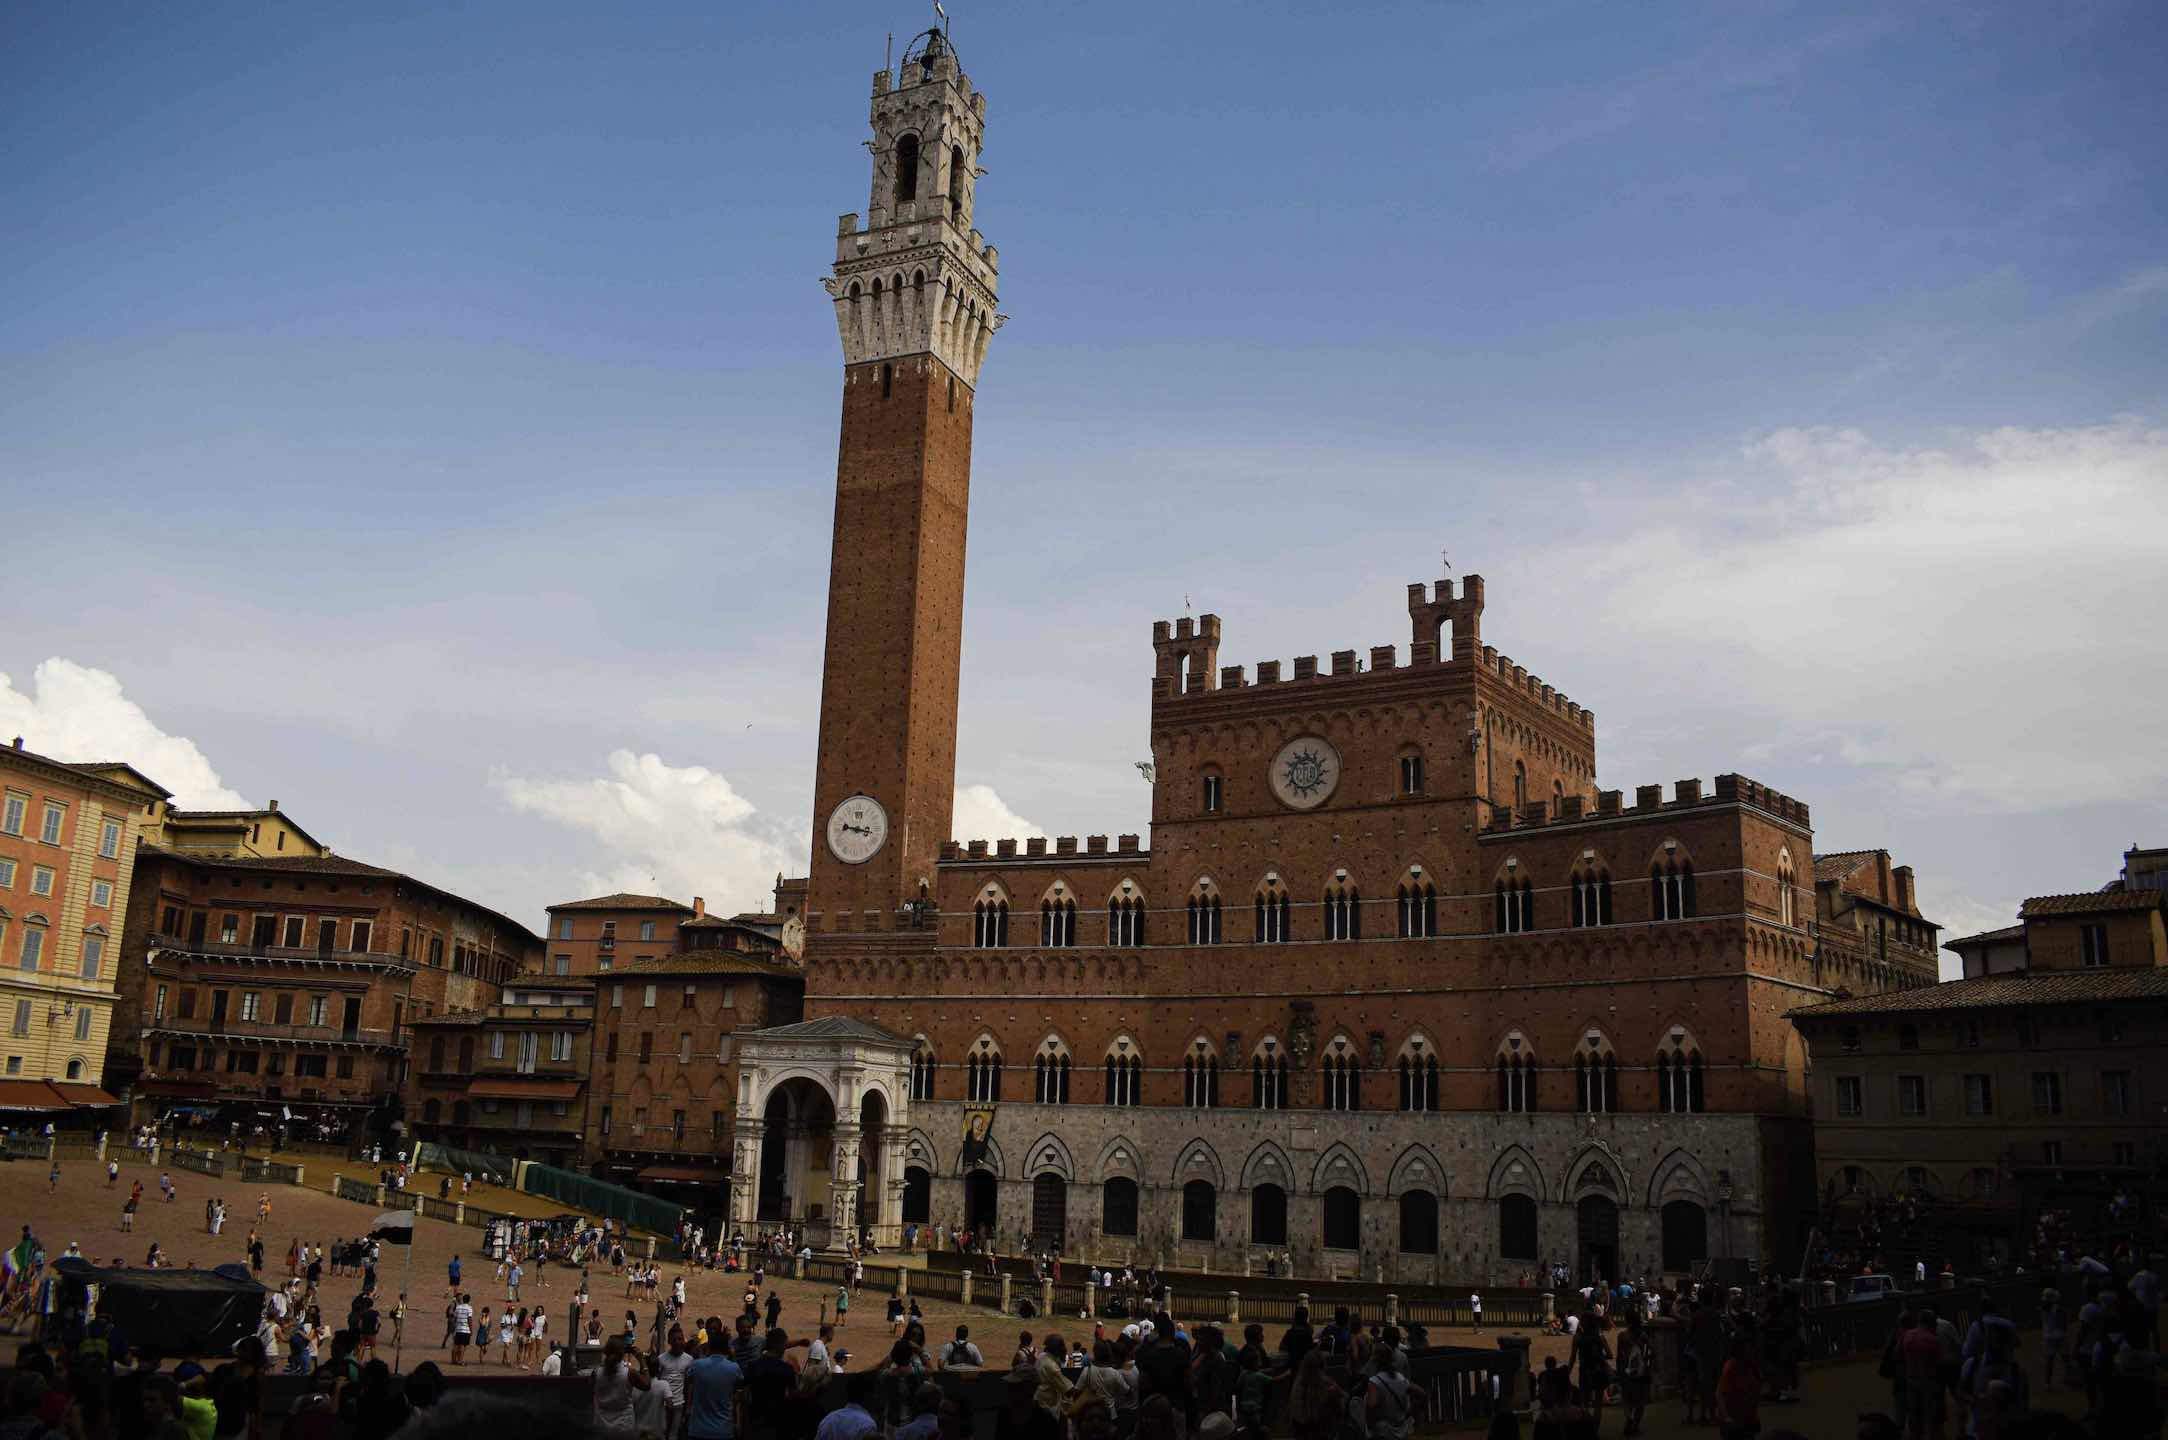 Pull up a chair and enjoy people watching at Siena's Piazza del Campo shown here in summer